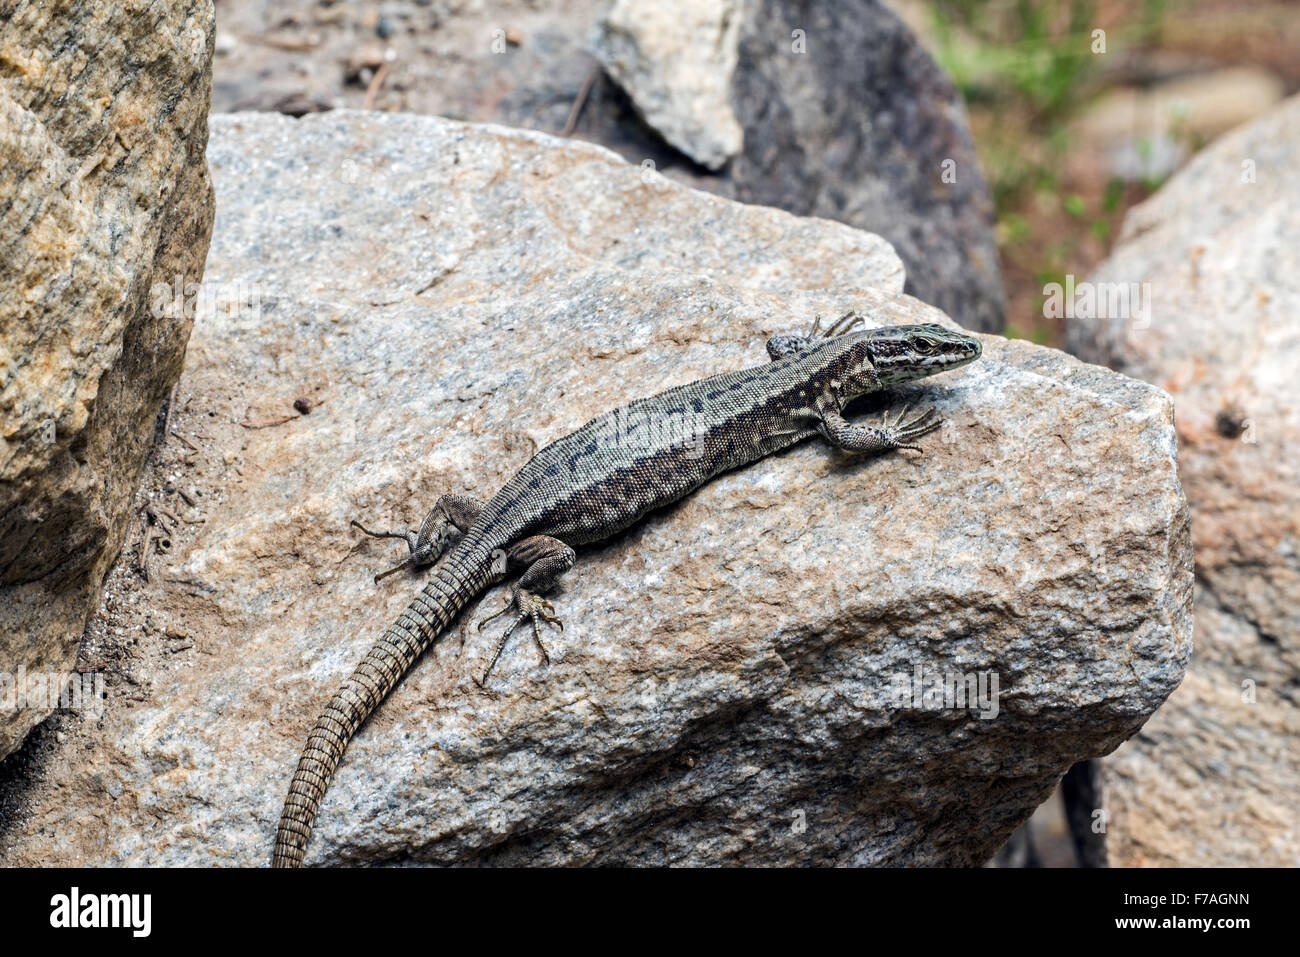 Common wall lizard (Podarcis muralis / Lacerta muralis) basking in the sun on rock - Stock Image